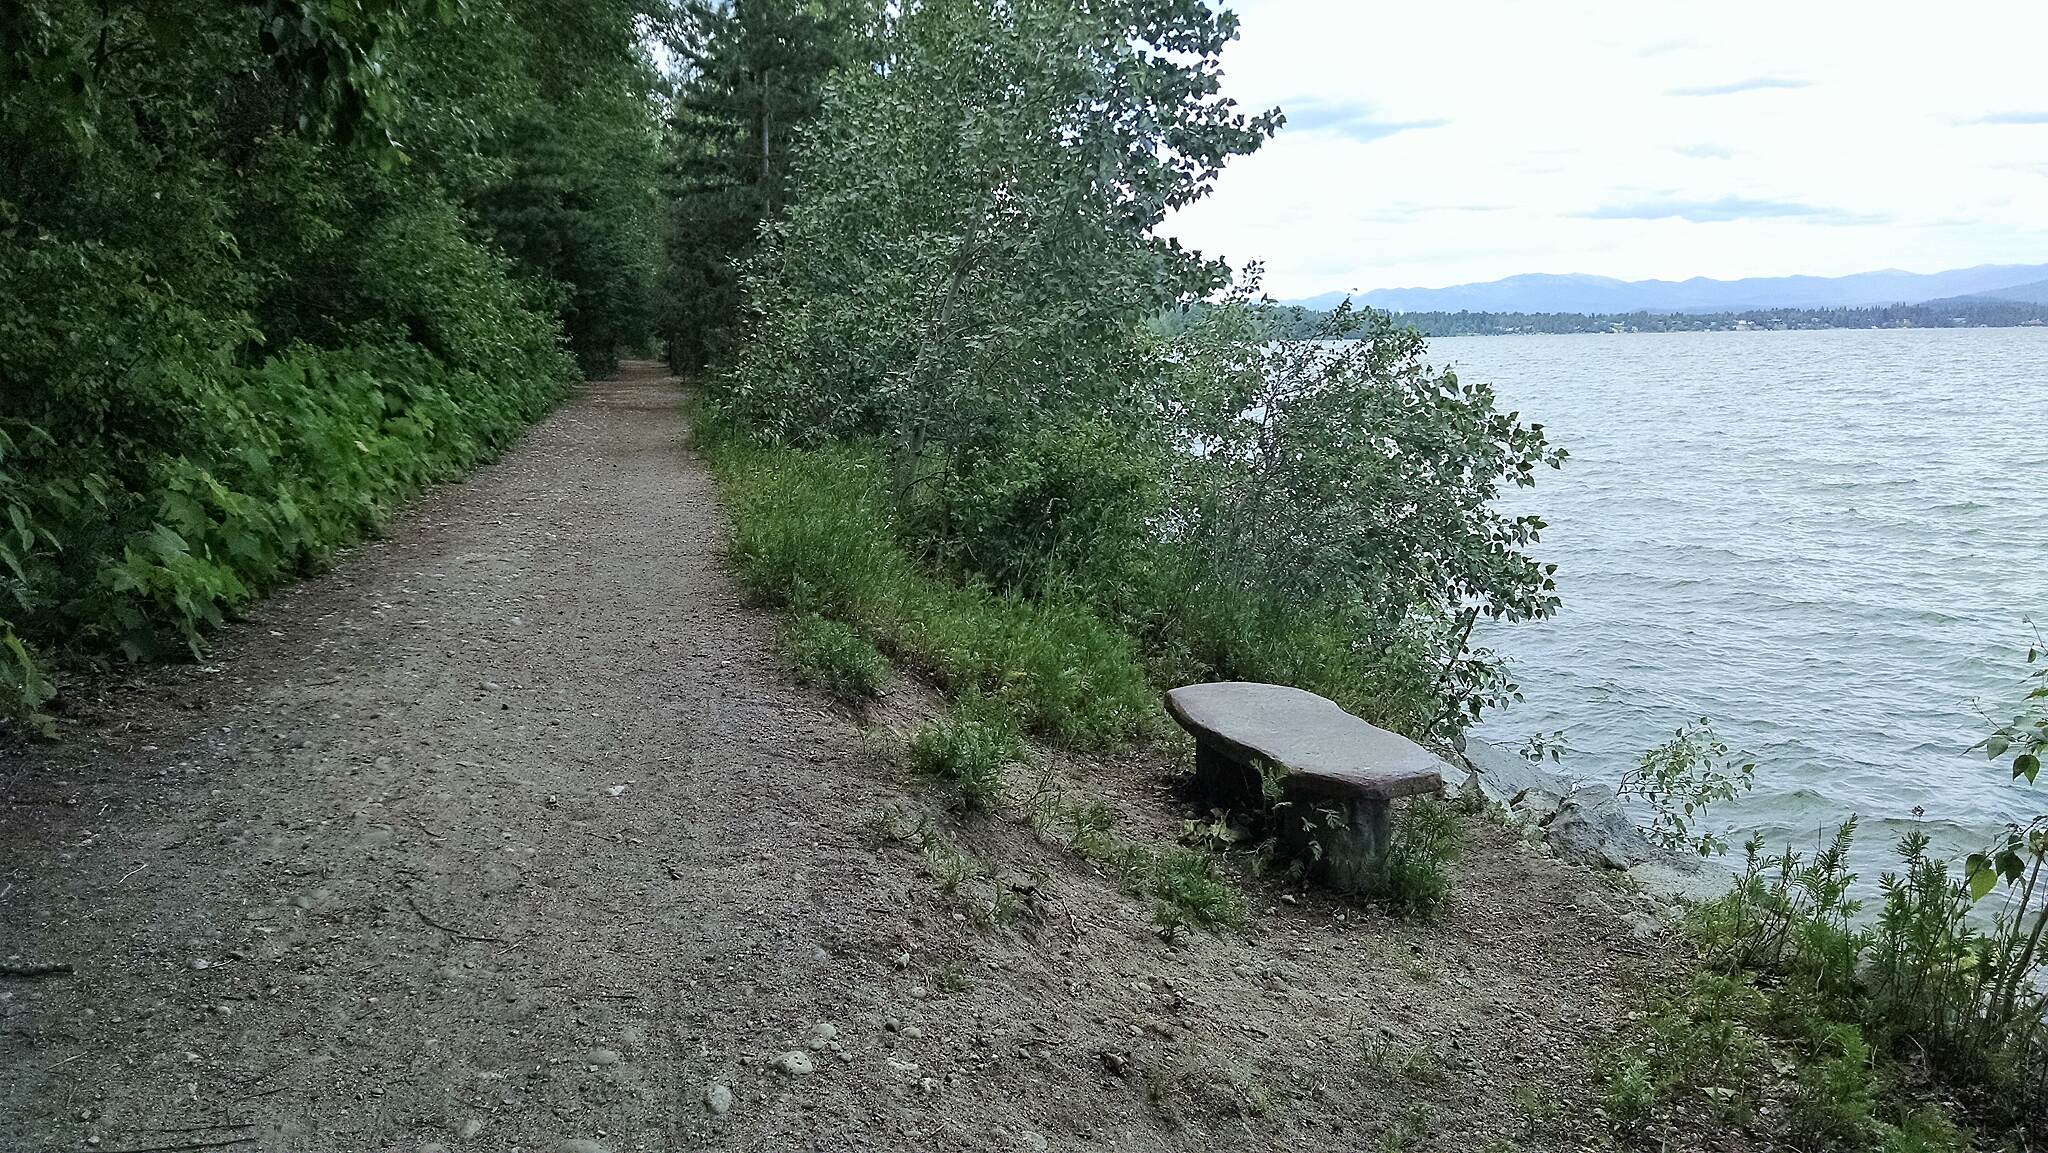 Pend d'Oreille Bay Trail One of the benches along the route Heading north on the west side of the bay